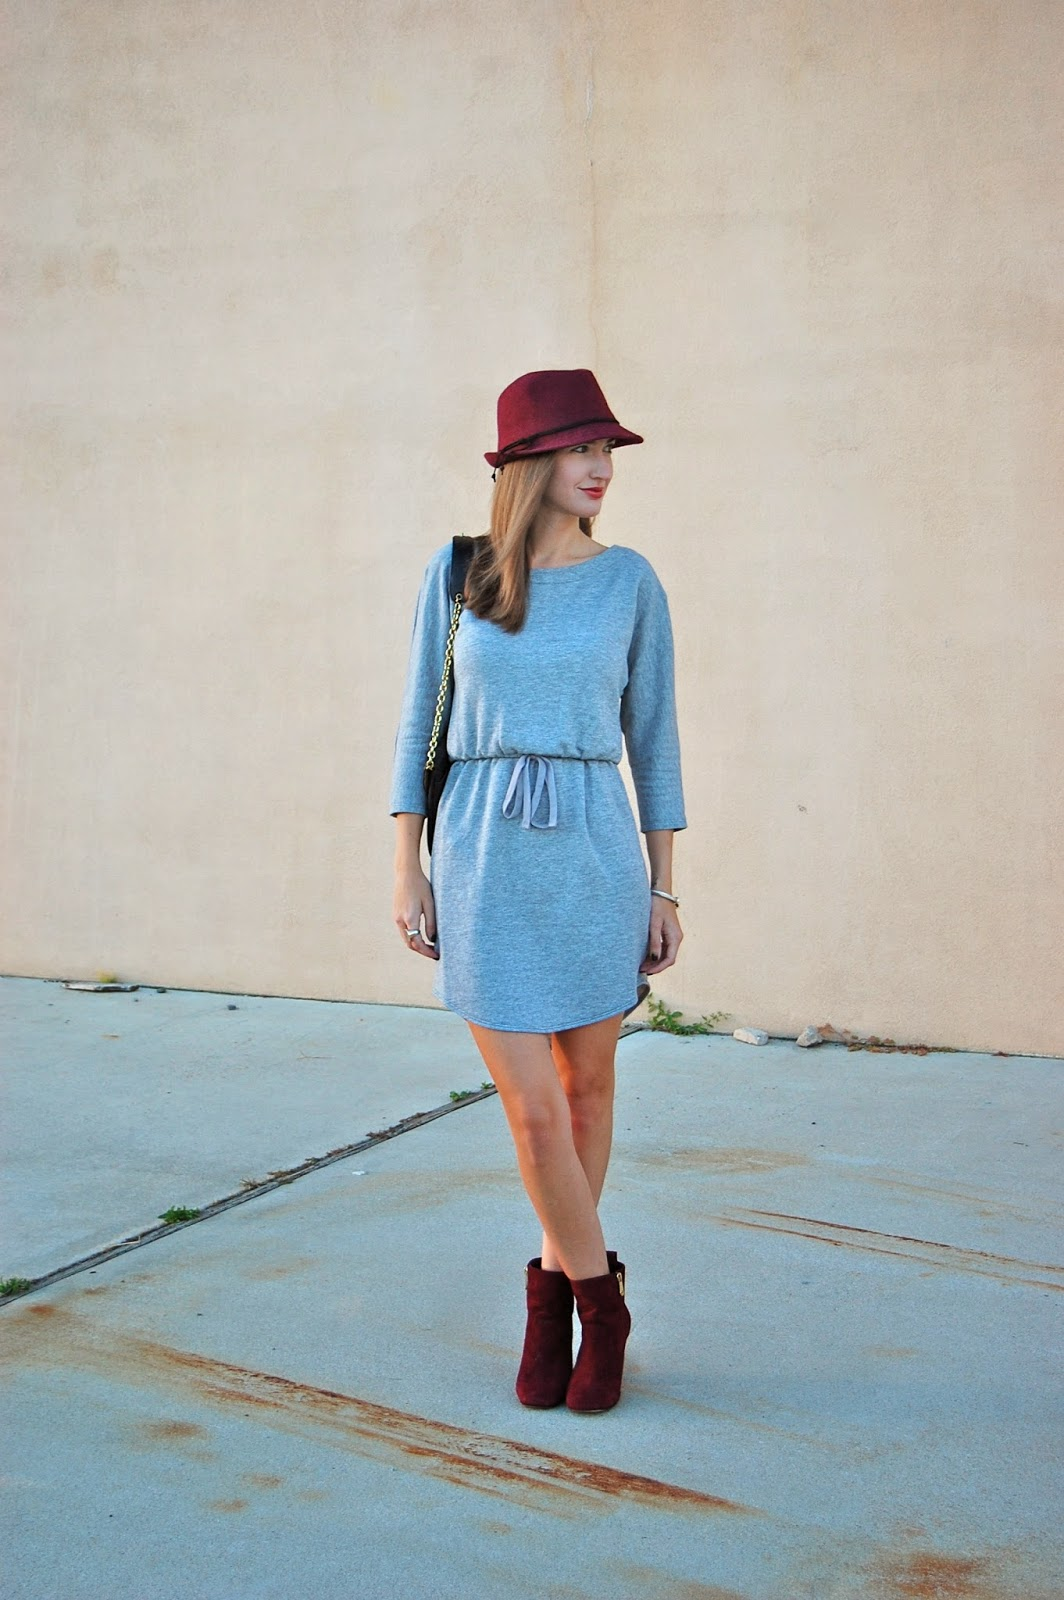 Wearing Old Navy Sweatshirt Dress, Wine colored Fedora, Wine colored booties